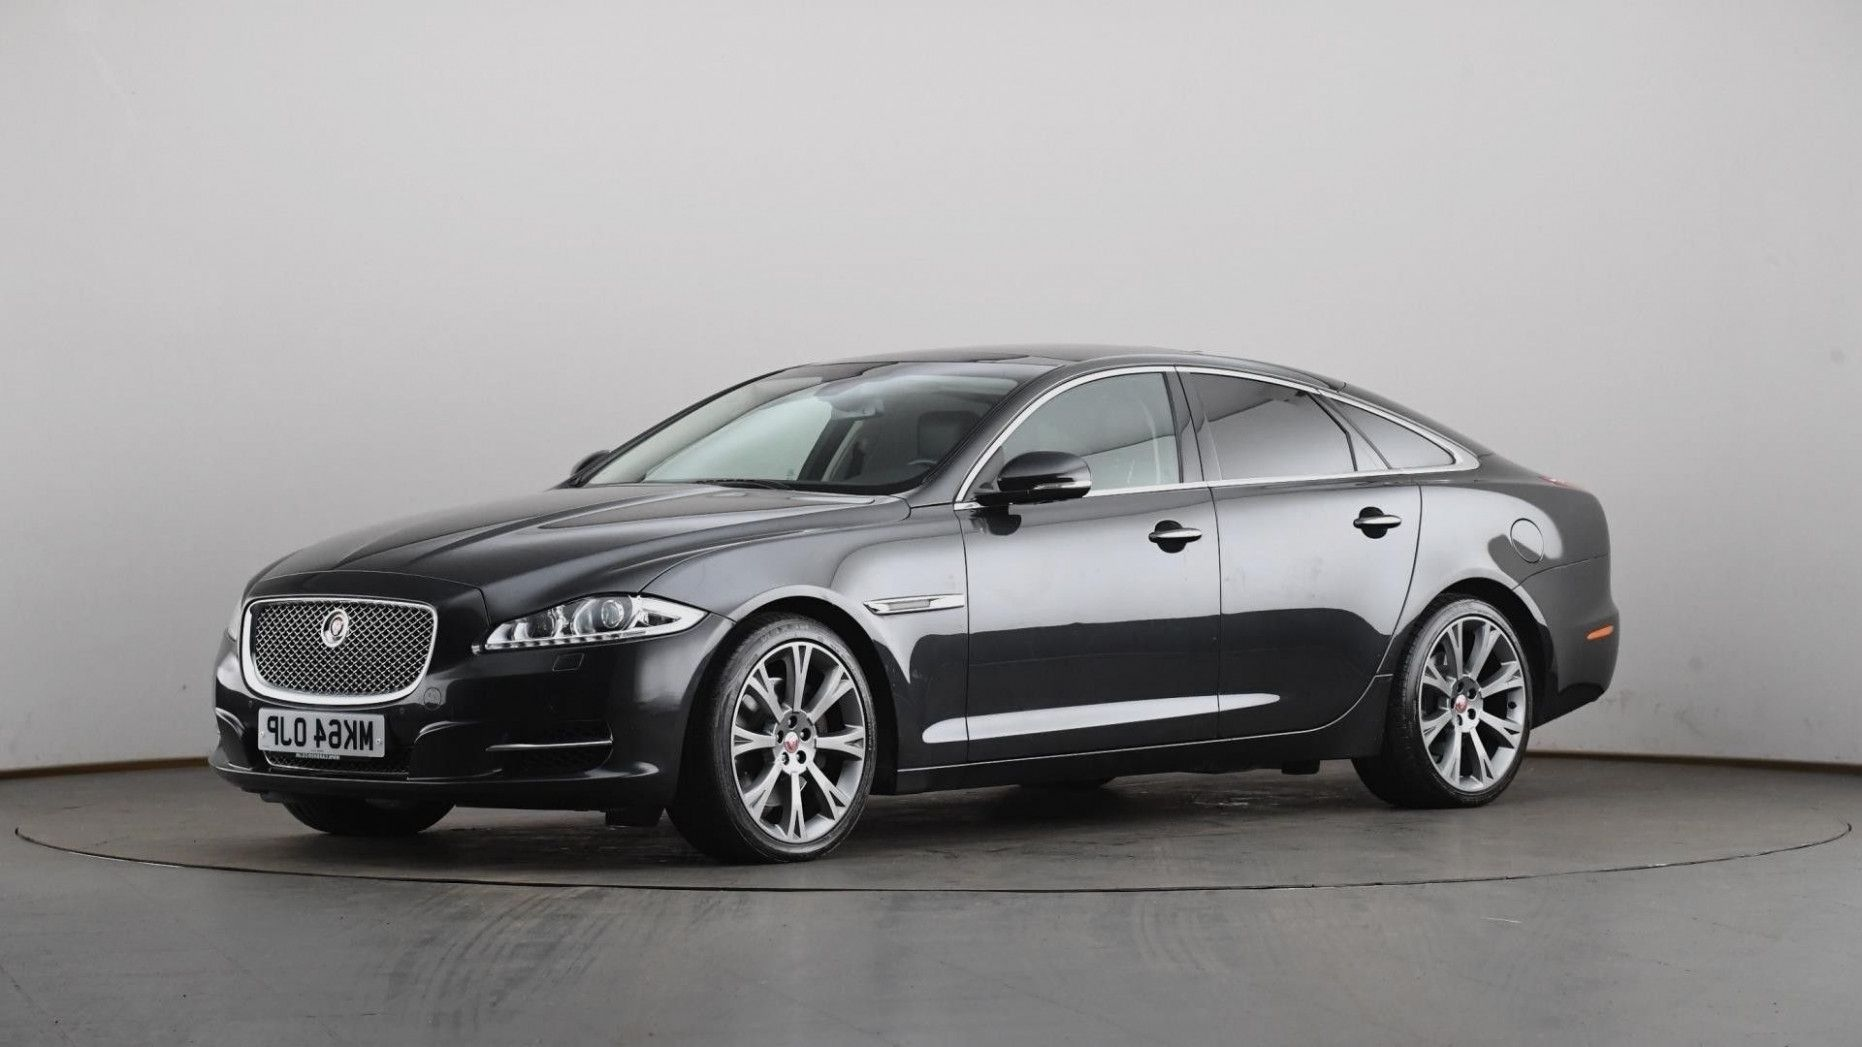 Ten Brilliant Ways To Advertise 2020 Jaguar Xj Release